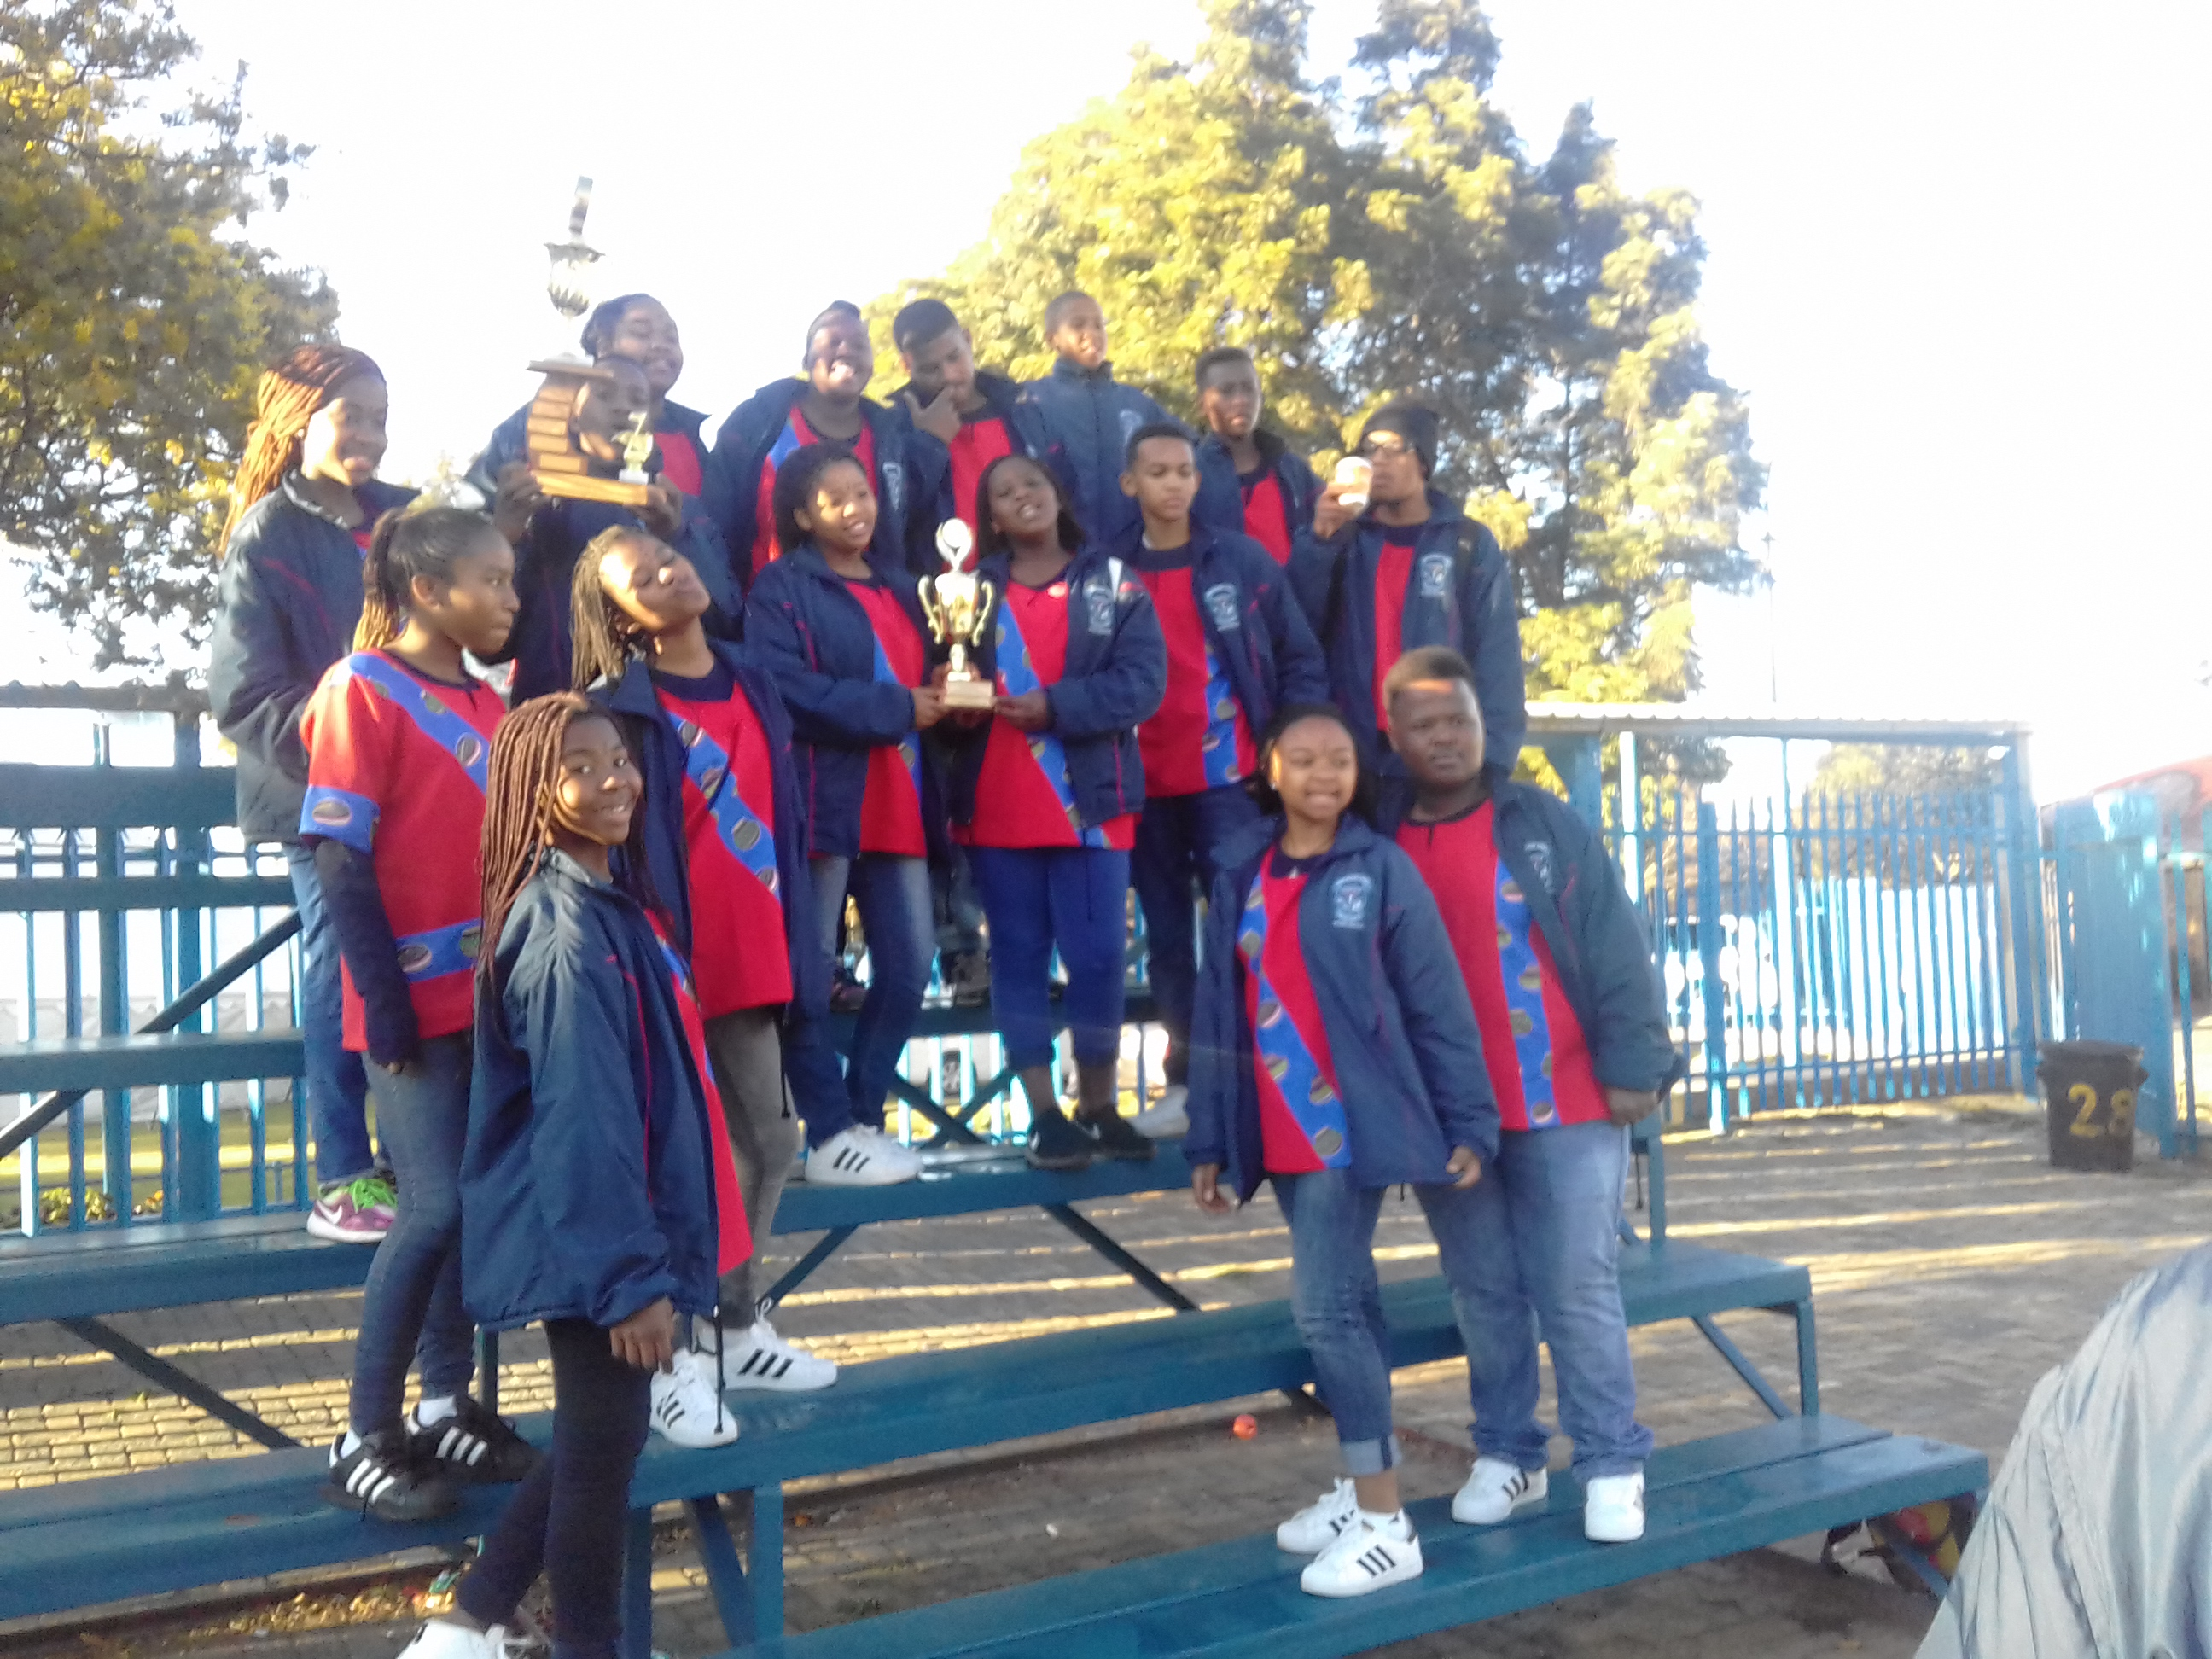 Heideveld Steelband's winning performance at the International Marimba & Steelband Festival, Johannesburg, 2016